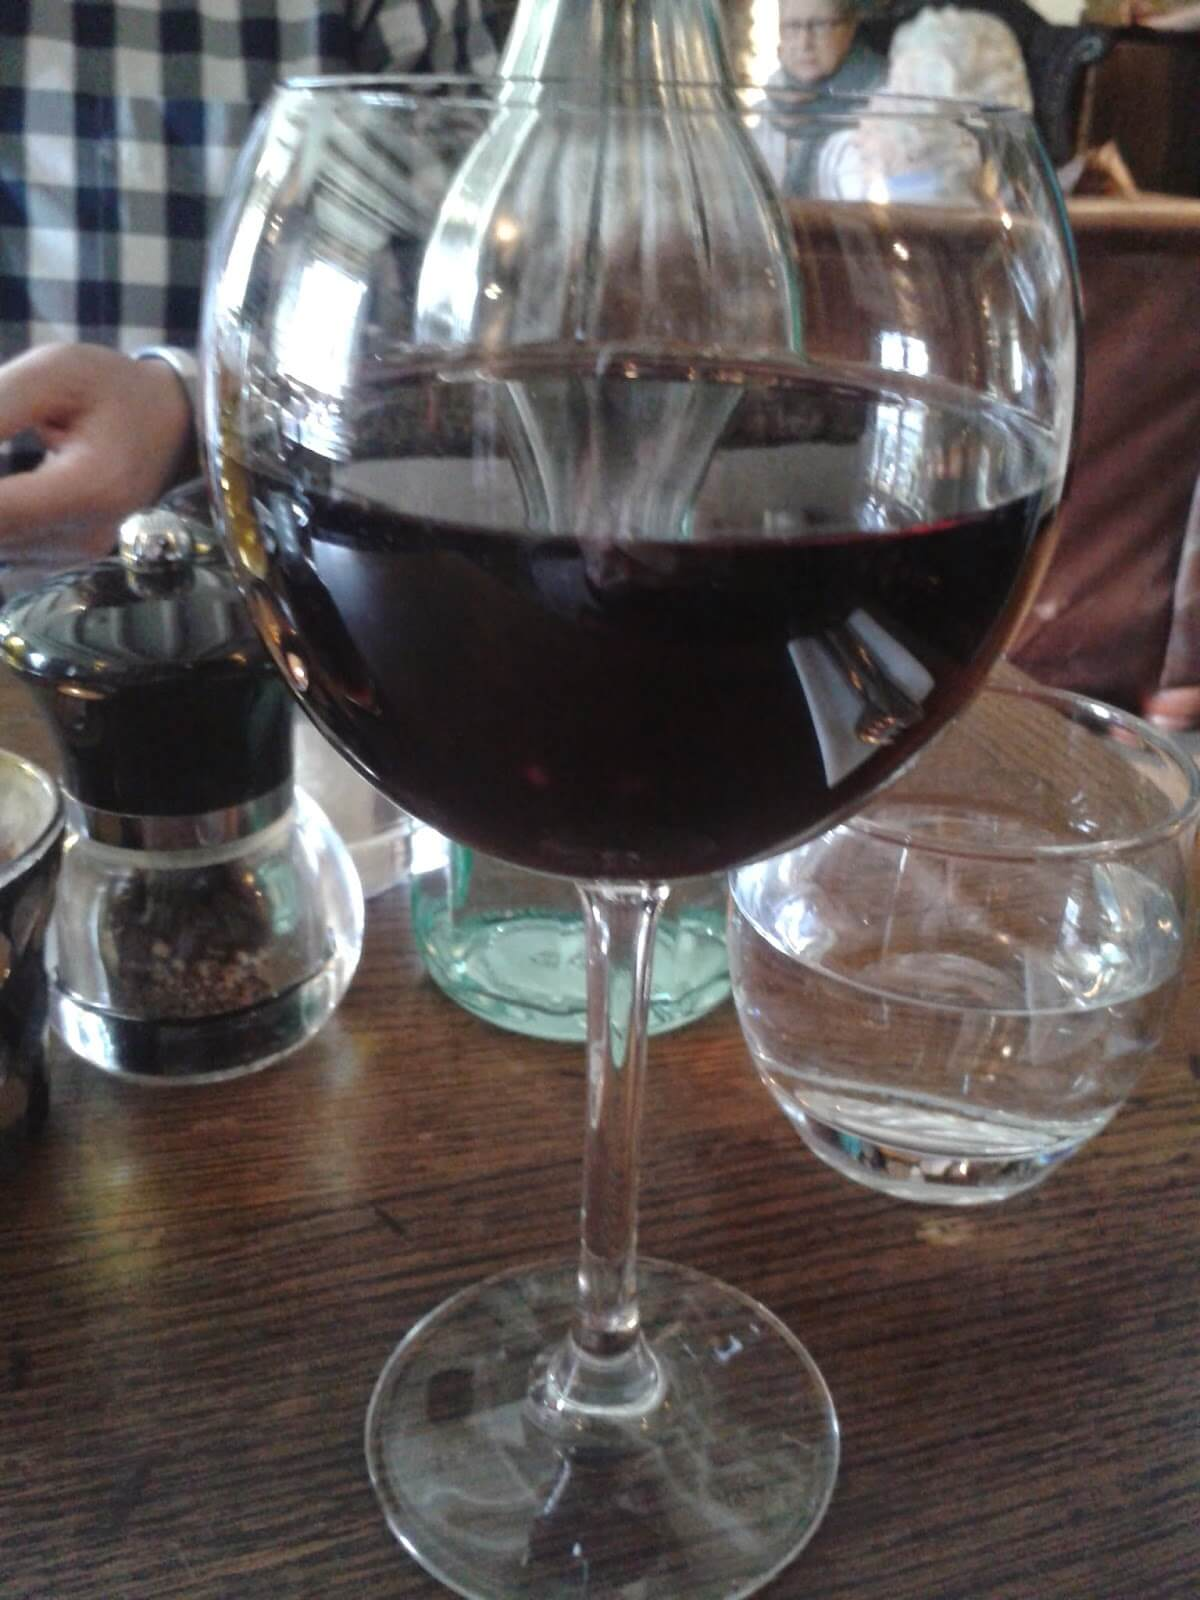 How safe is a glass of wine for our health? Large glass of Malbec red wine